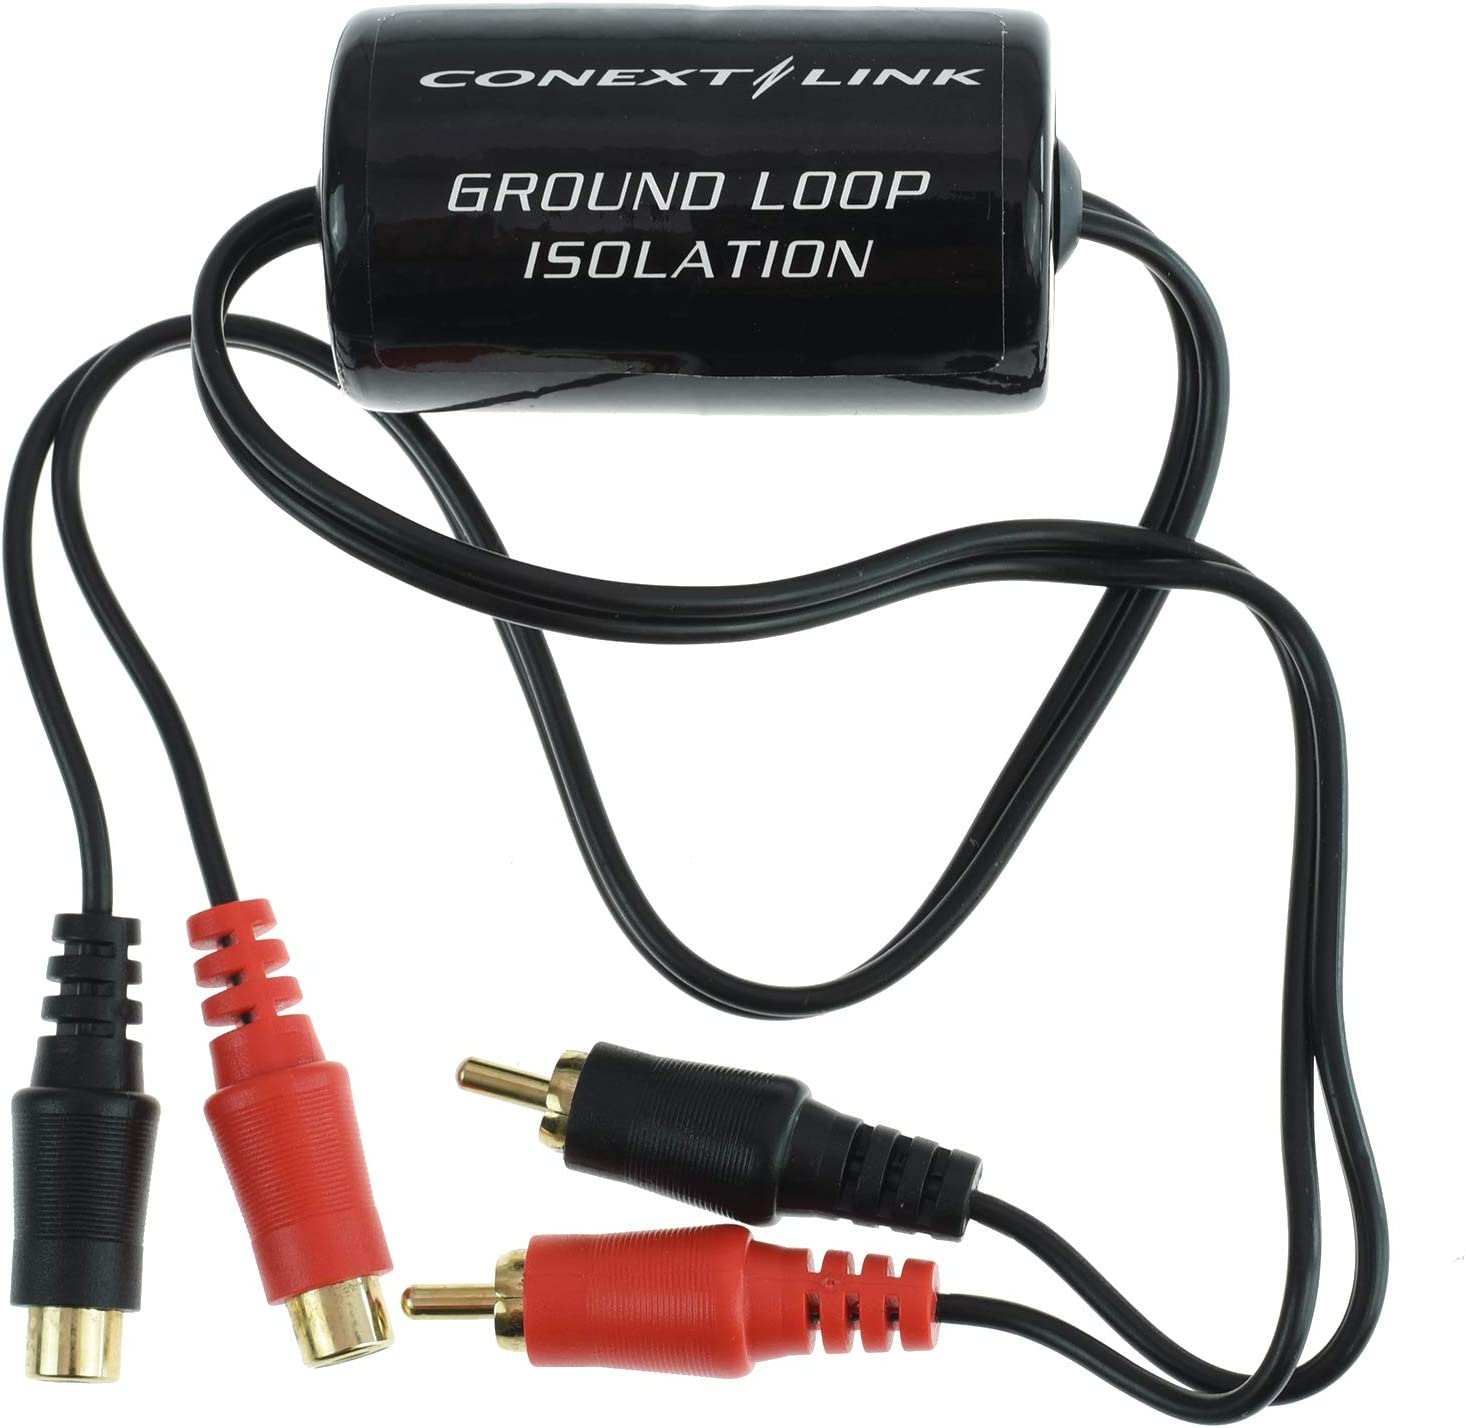 Conext Link AD104 RCA Stereo 2 Channel Ground Loop Isolator Signal Noise Filter Suppressor